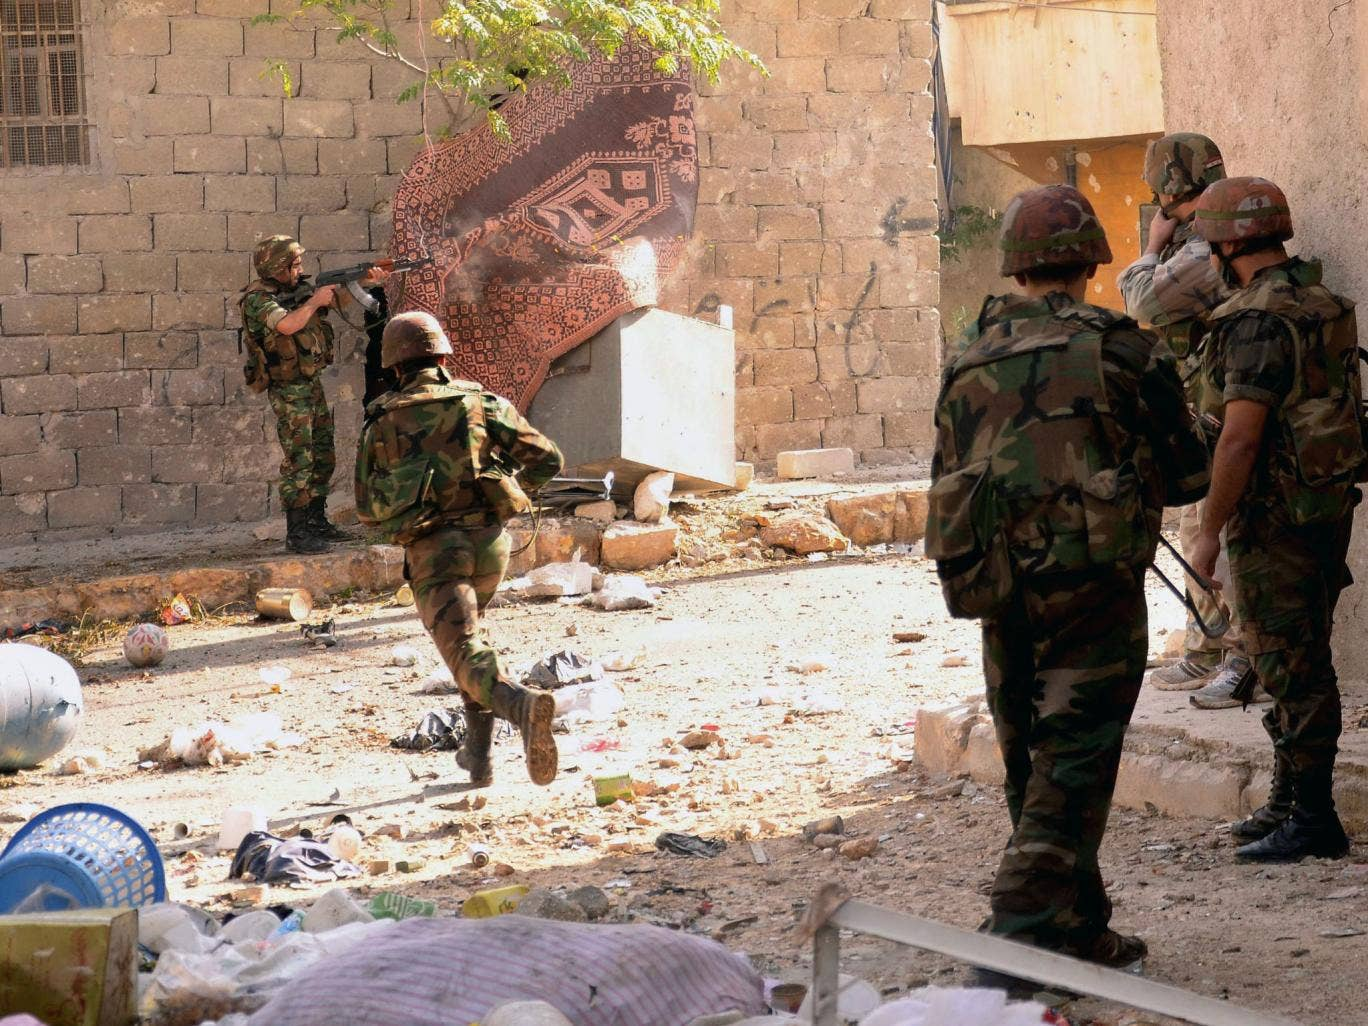 A Syrian army soldier runs across the street as others open fire during clashes with opposition fighters in the Tal al-Zarazi neighbourhood of the northern Syrian city of Aleppo on November 13, 2012.